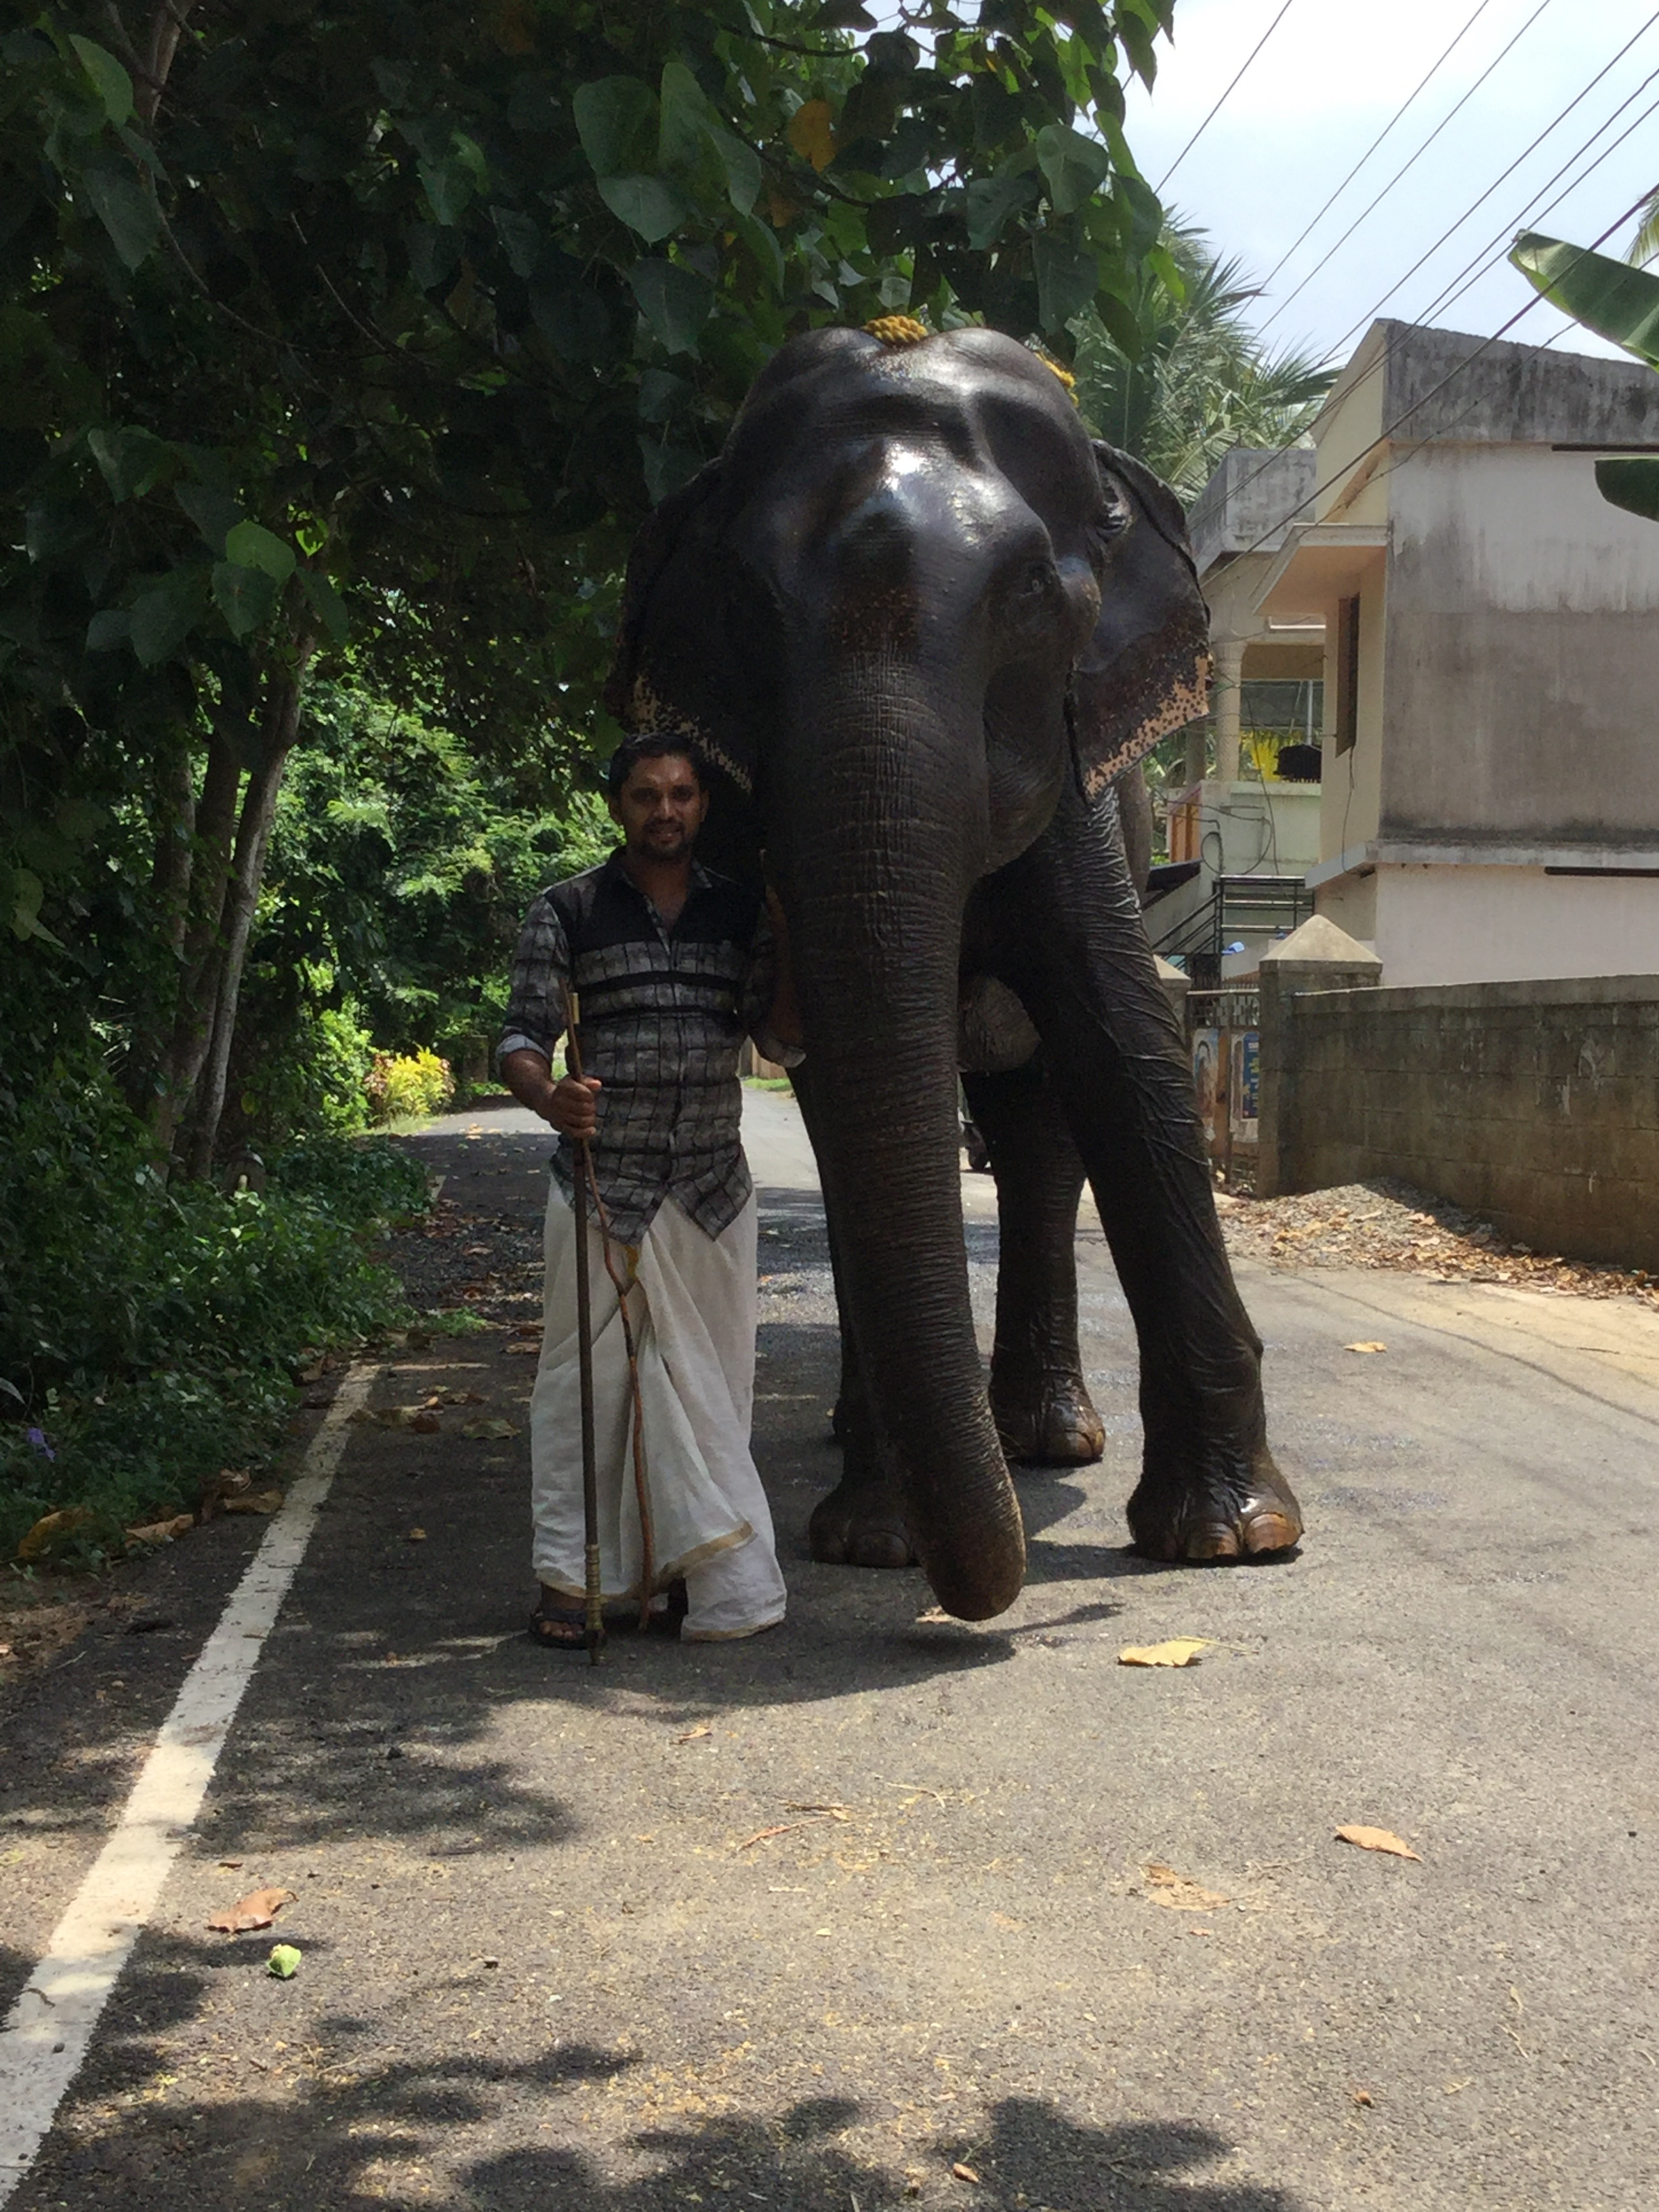 Mahout Mukesh Nair takes Dakshayani for a walk. Photo credit: Ashraf Padanna